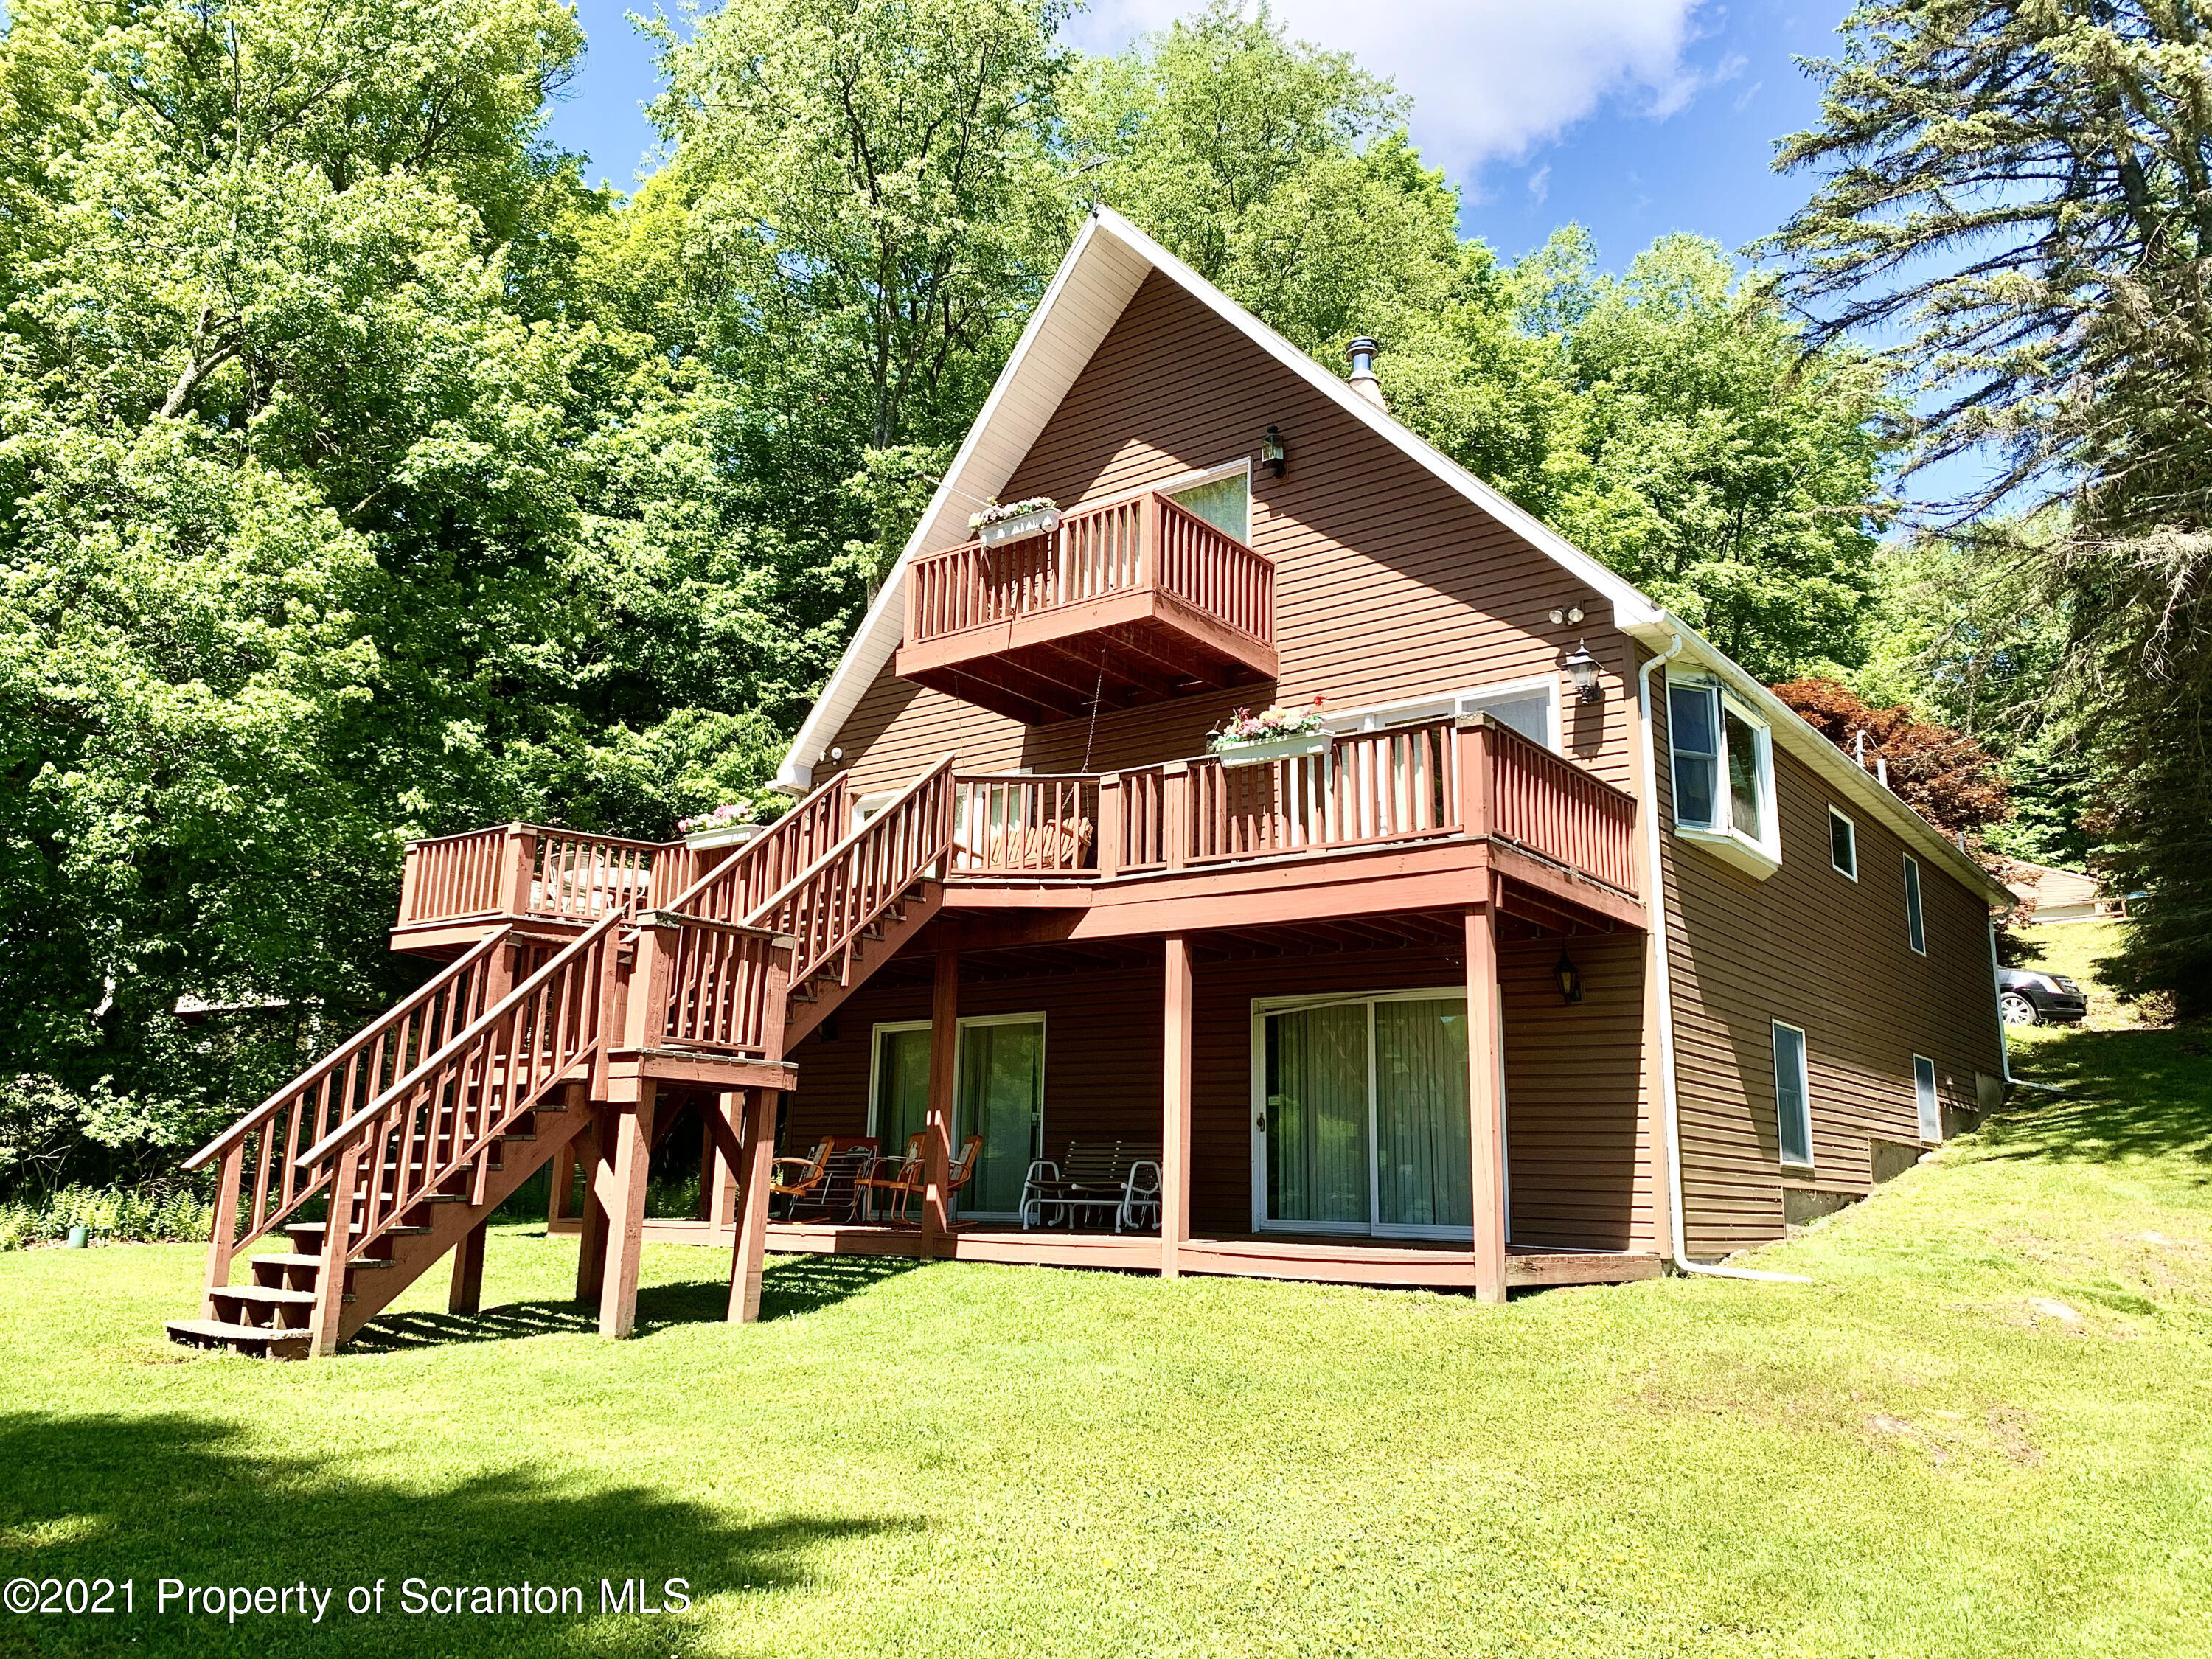 228 West Shore Drive, New Milford, Pennsylvania 18834, 3 Bedrooms Bedrooms, 9 Rooms Rooms,3 BathroomsBathrooms,Single Family,For Sale,West Shore Drive,21-2130